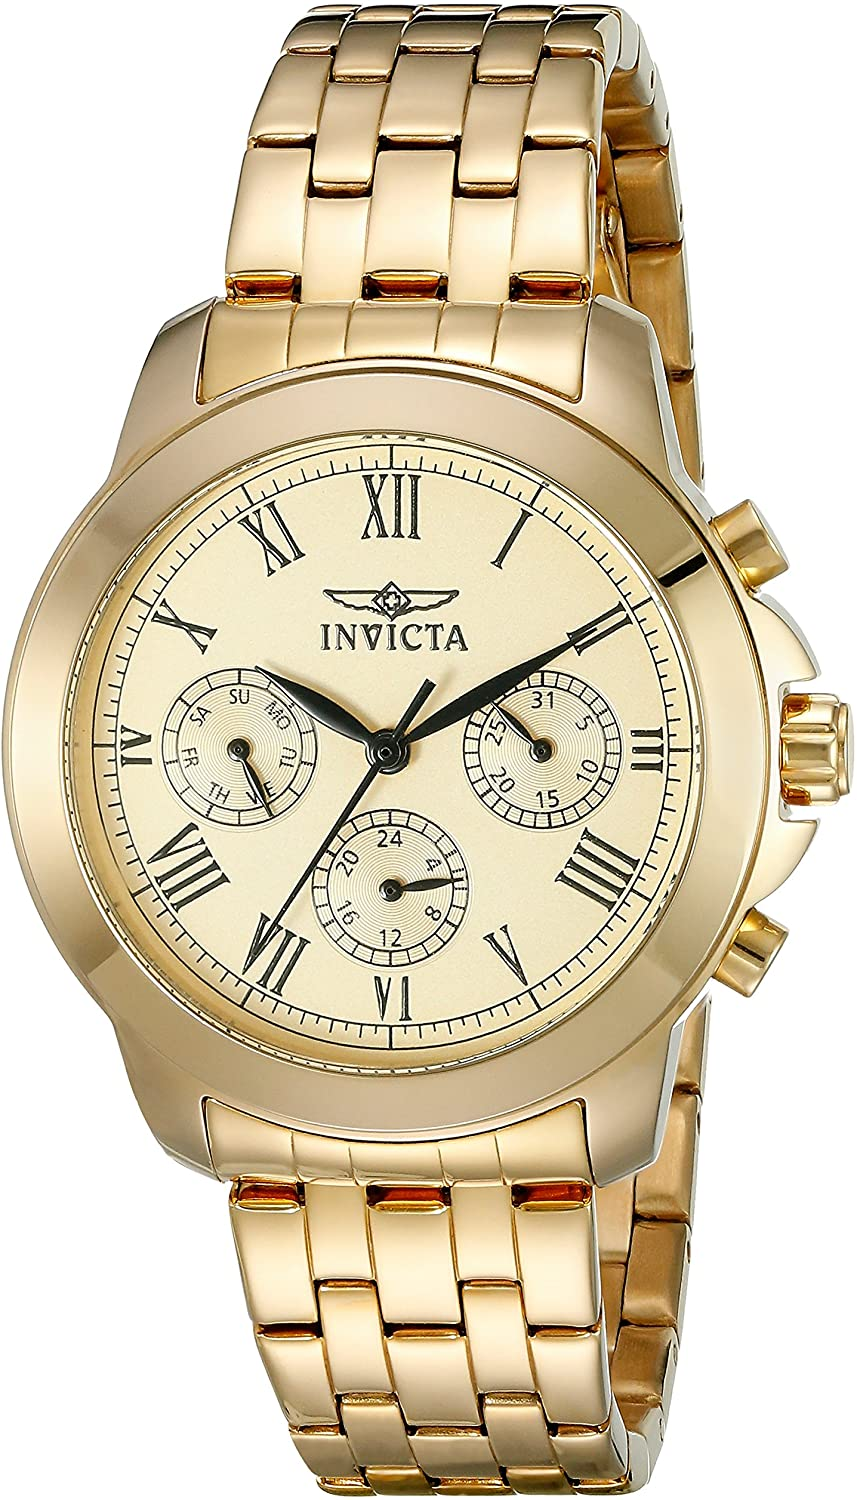 Invicta Women s 21654 Specialty Analog Display Swiss Quartz Gold-Plated Watch